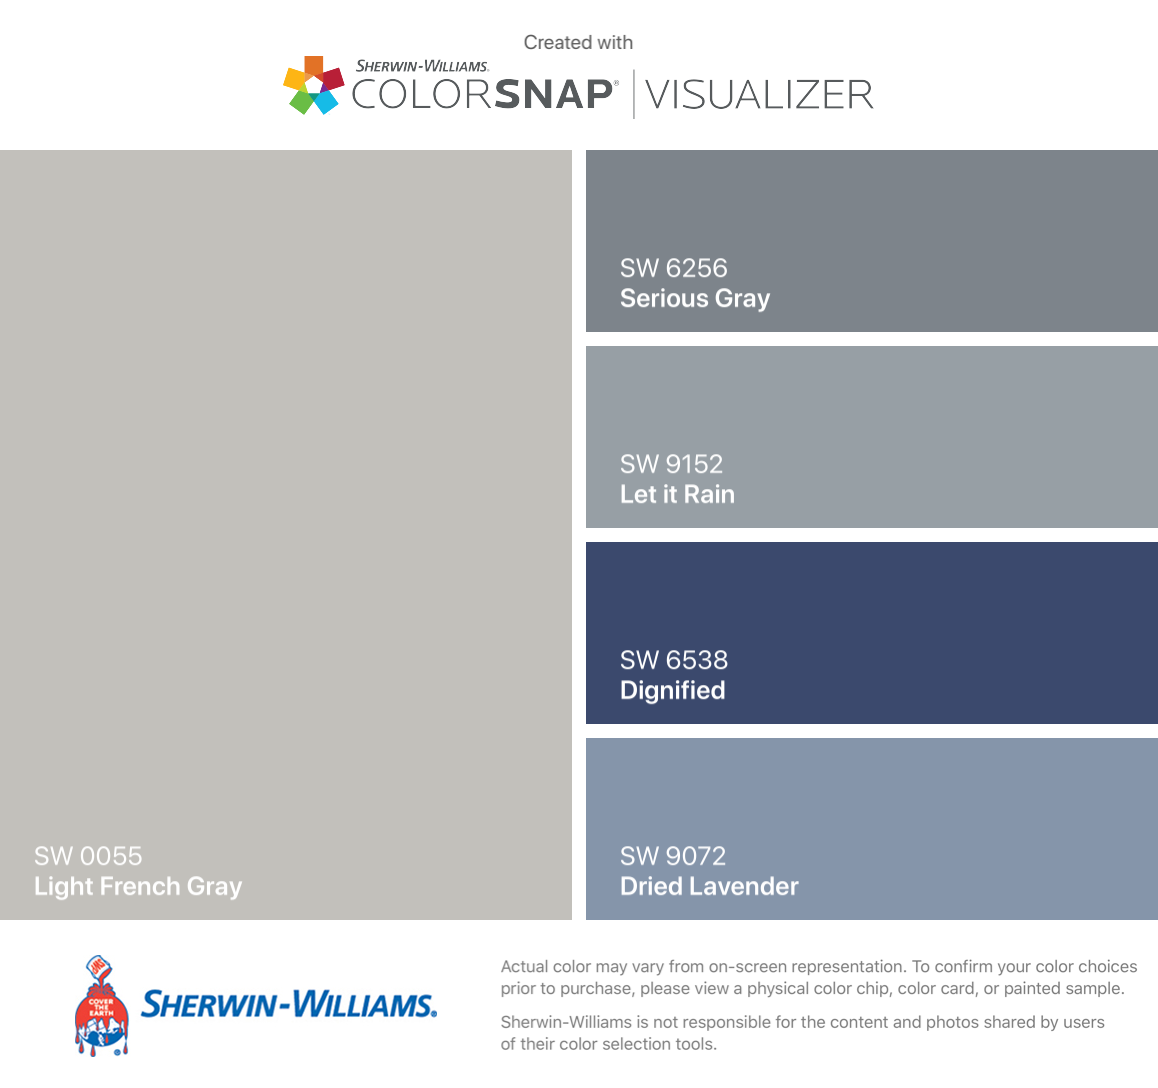 I Found These Colors With Colorsnap Visualizer For Ipho Interior Paint Colors For Living Room Gray Paint Colors Sherwin Williams Sherwin Williams Paint Colors